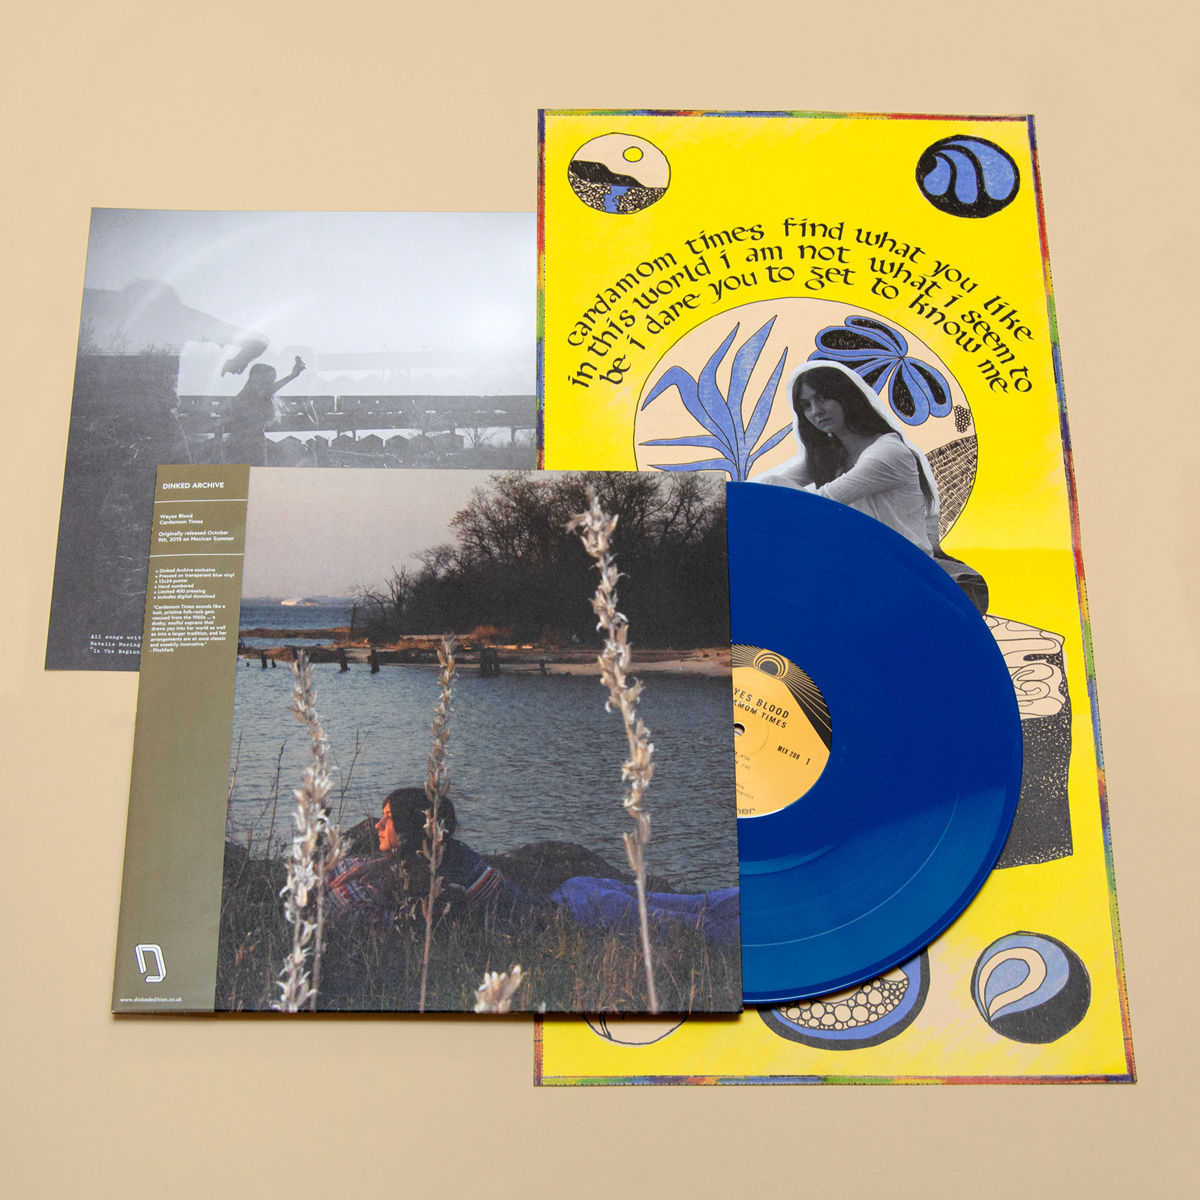 The fabulous folks at @MexicanSummer sent us some sneak peeks of the LUSH @WeyesBlood Cardamom Times #DinkedEdition Archive02. dinkededition.co.uk/weyes-blood-ca… Those of you who were lucky enough to grab one of these are clearly in for a treat for your eyes & ears! @orchtweets